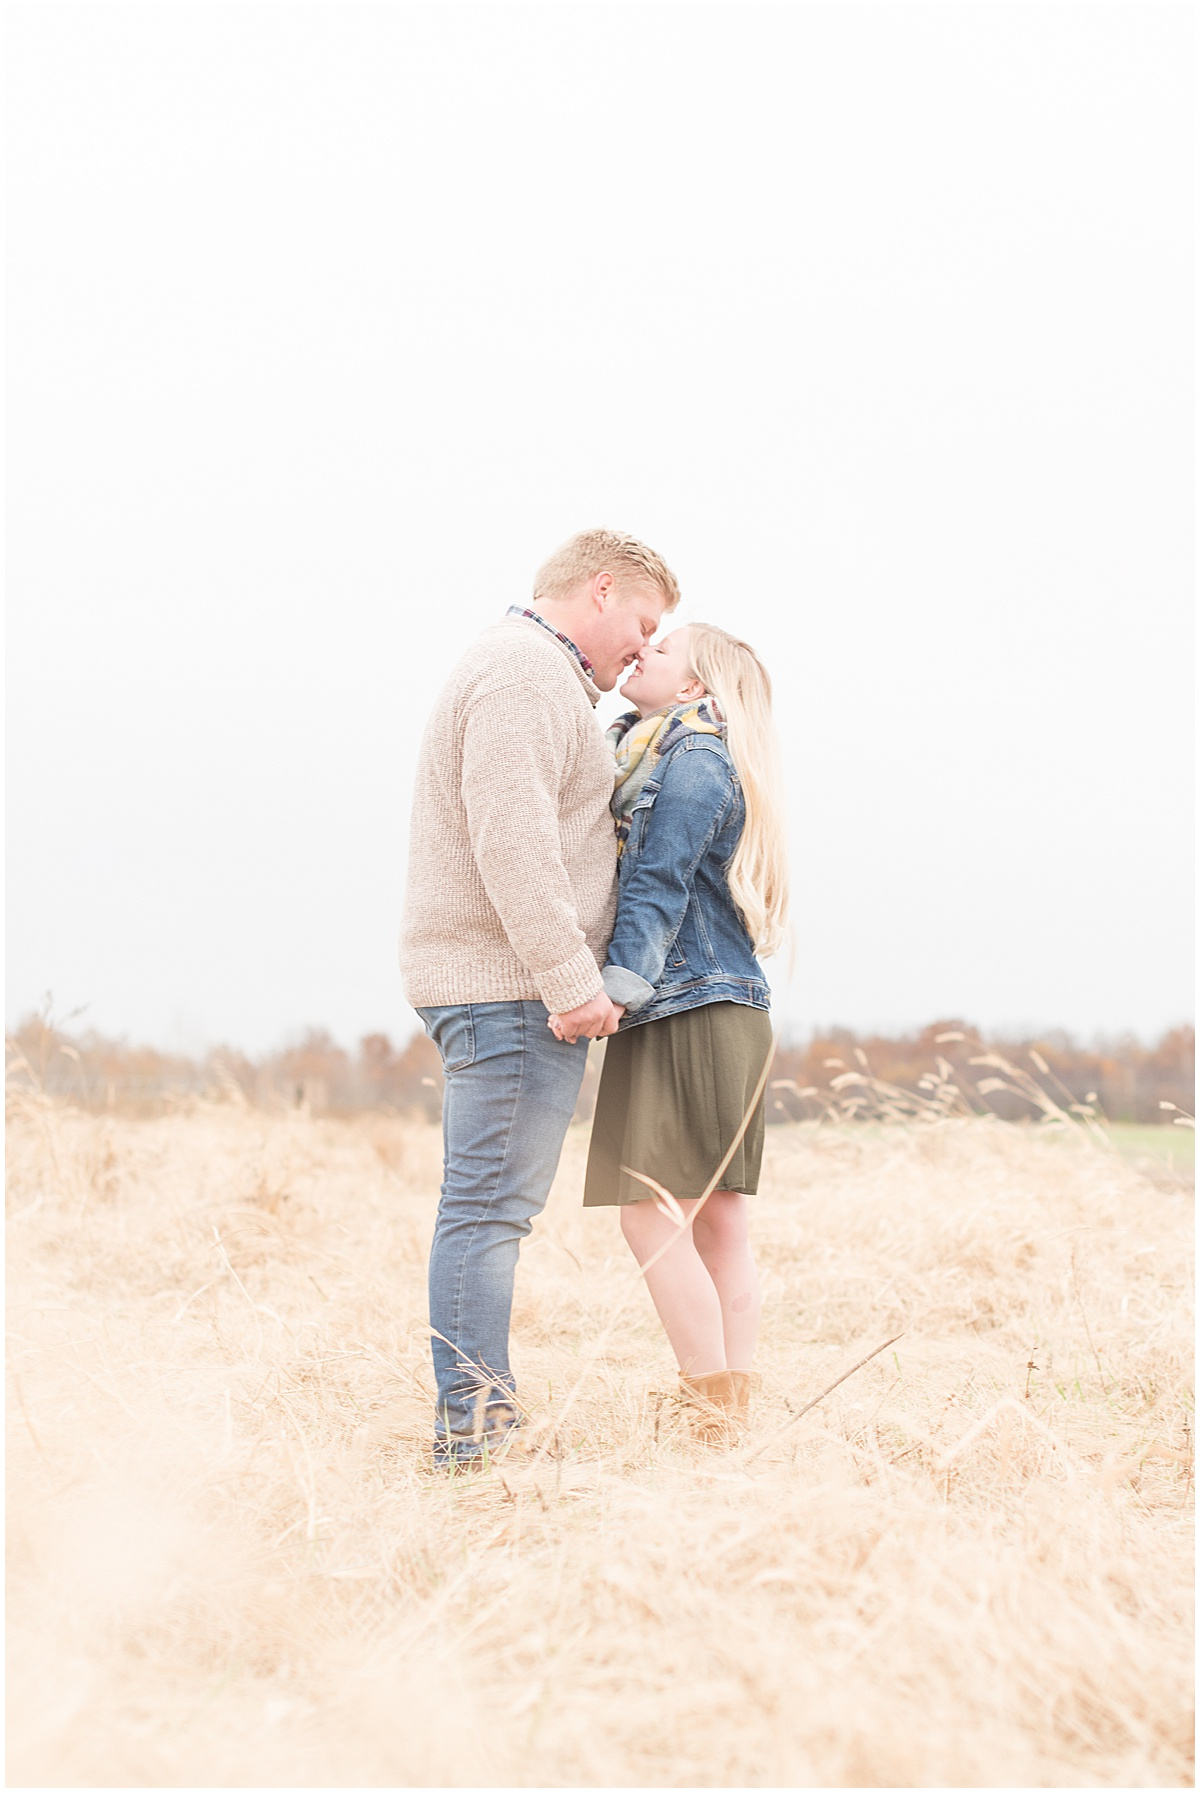 Tyler Van Wanzeele and Baileigh Fleming engagement photos at Wea Creek Orchard in Lafayette Indiana19.jpg